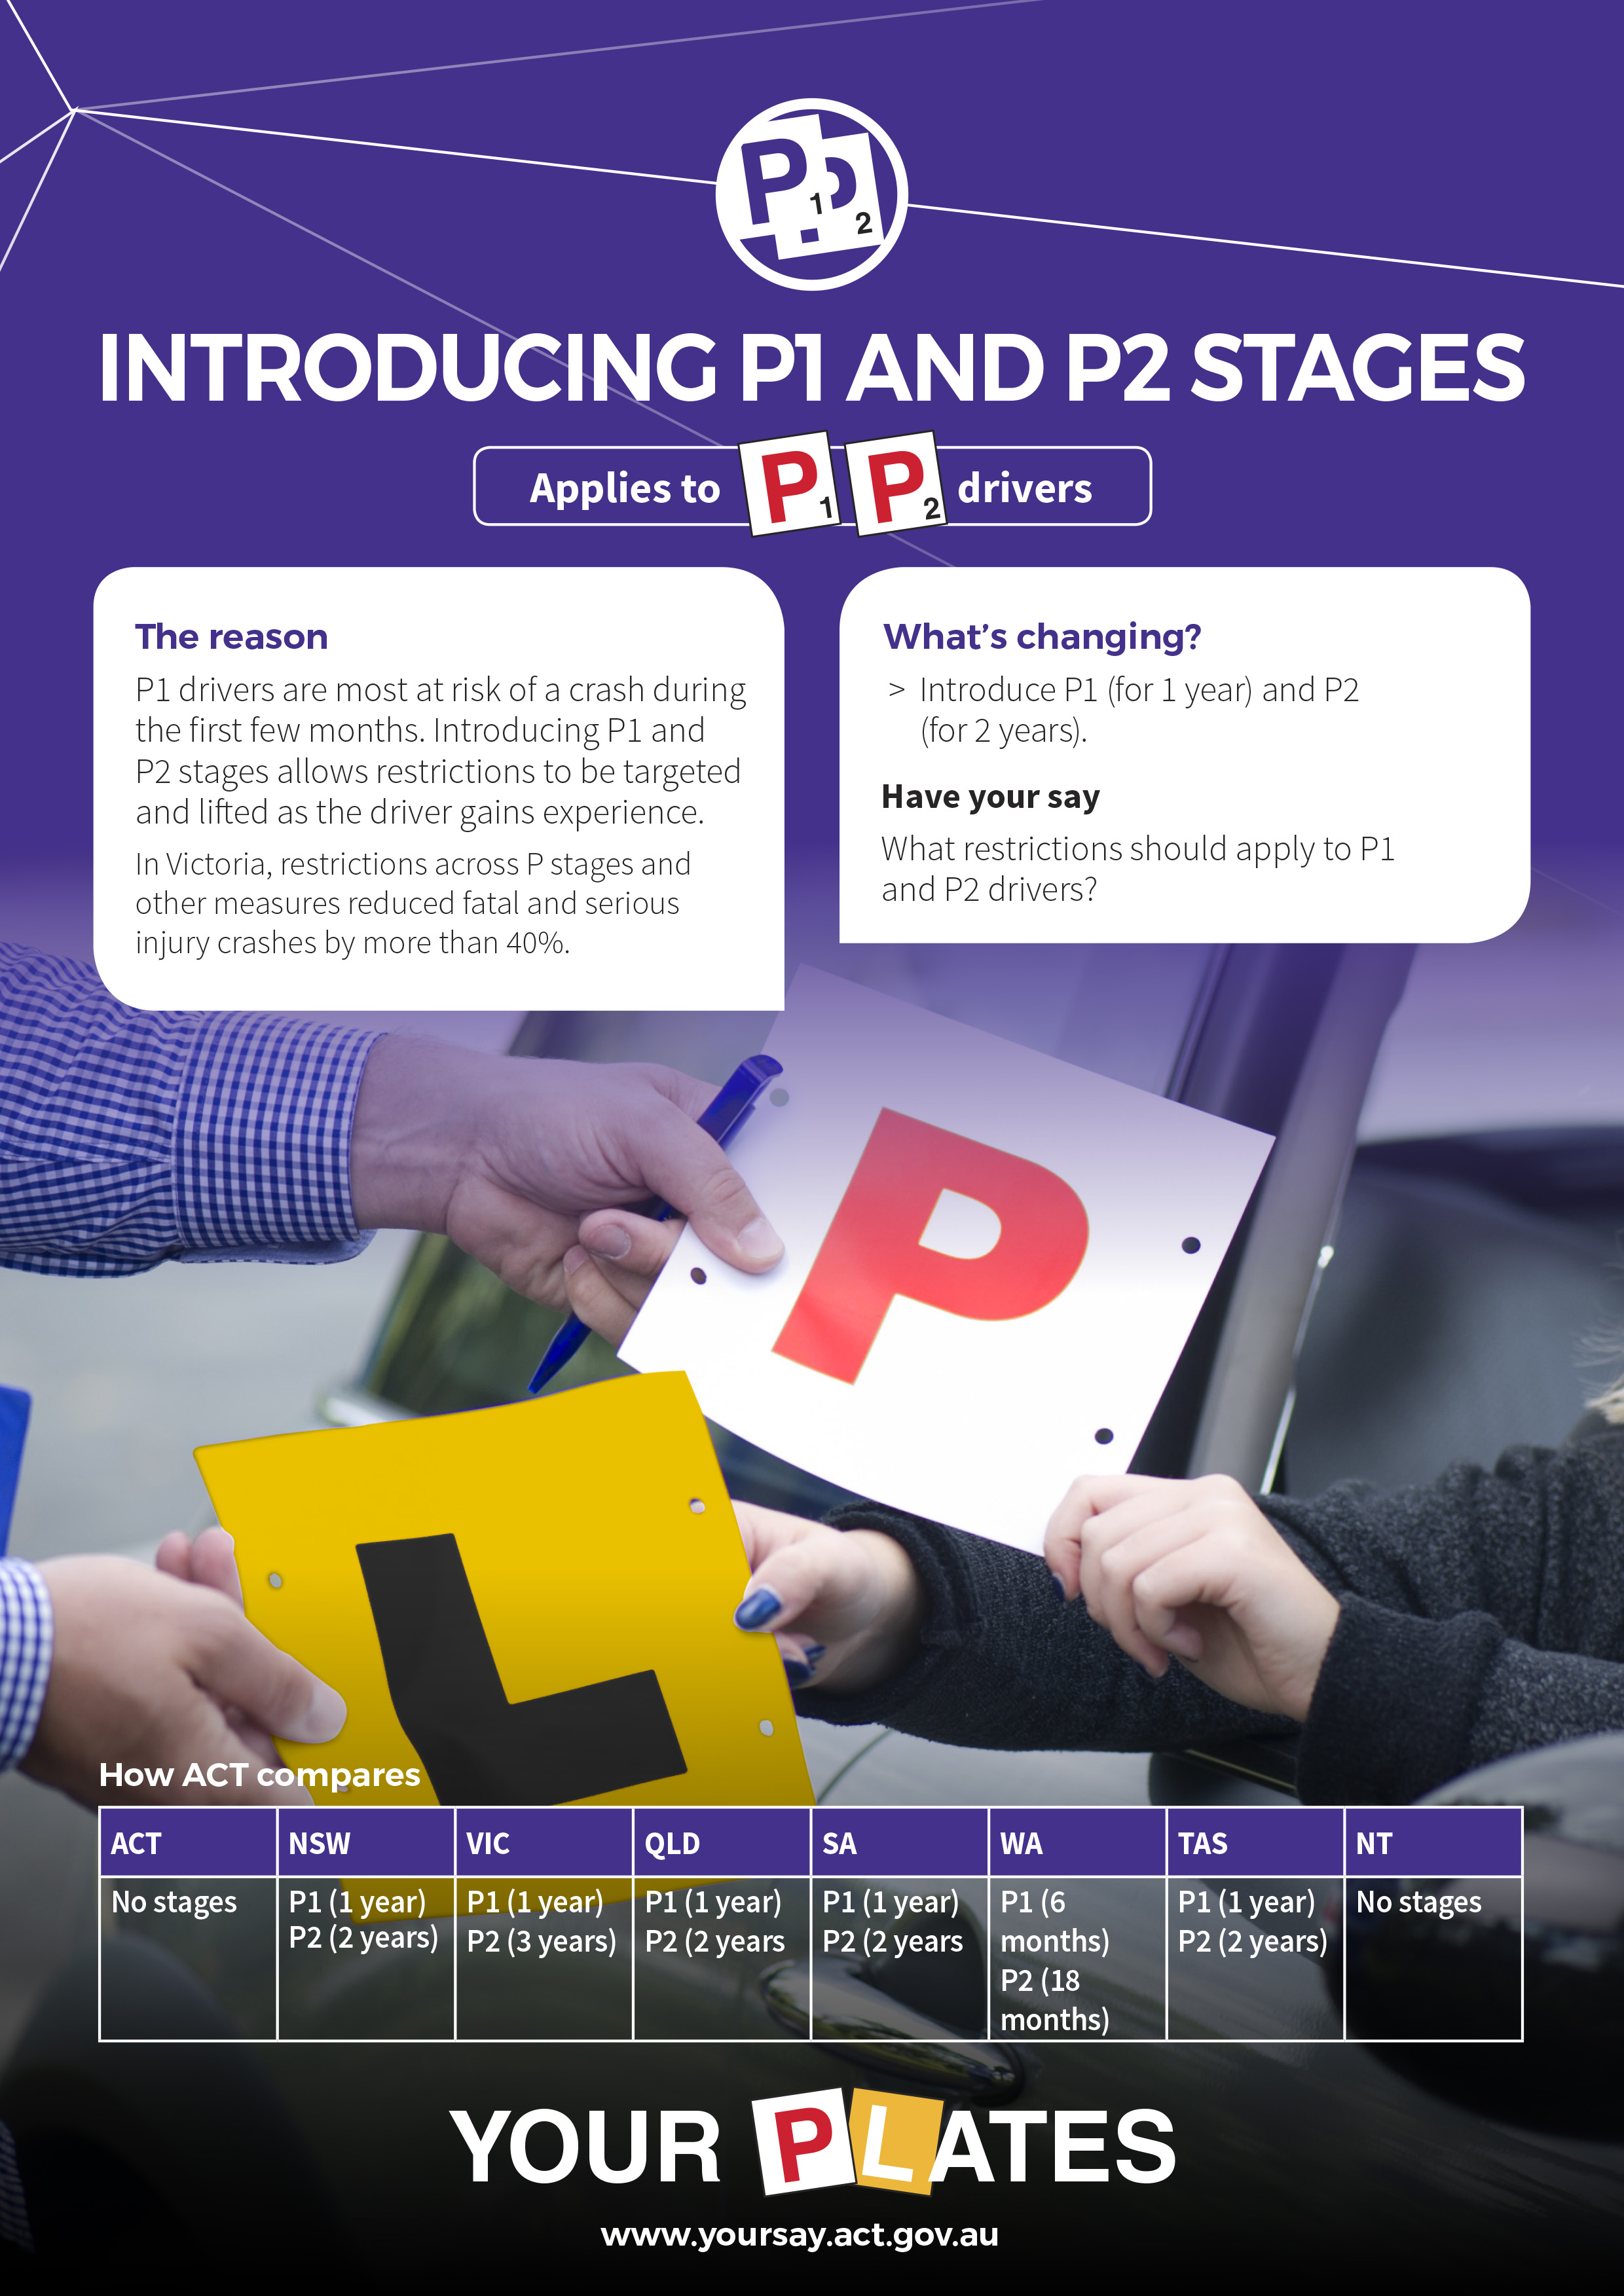 P1 drivers are most at risk of a crash during the first few months. Introducing P1 and P2 stages allows restrictions to be targeted and lifted as the driver gains experience.